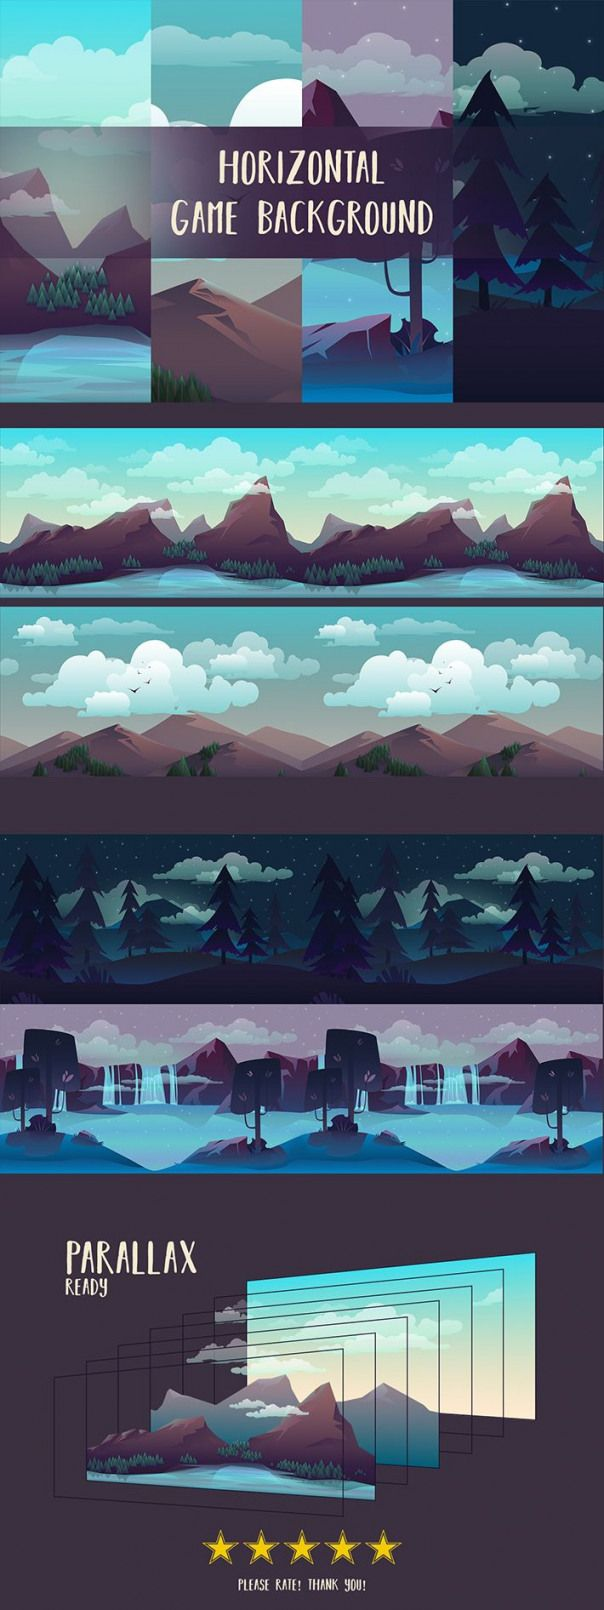 Here is a set of highquality Free Horizontal 2D Game Backgrounds